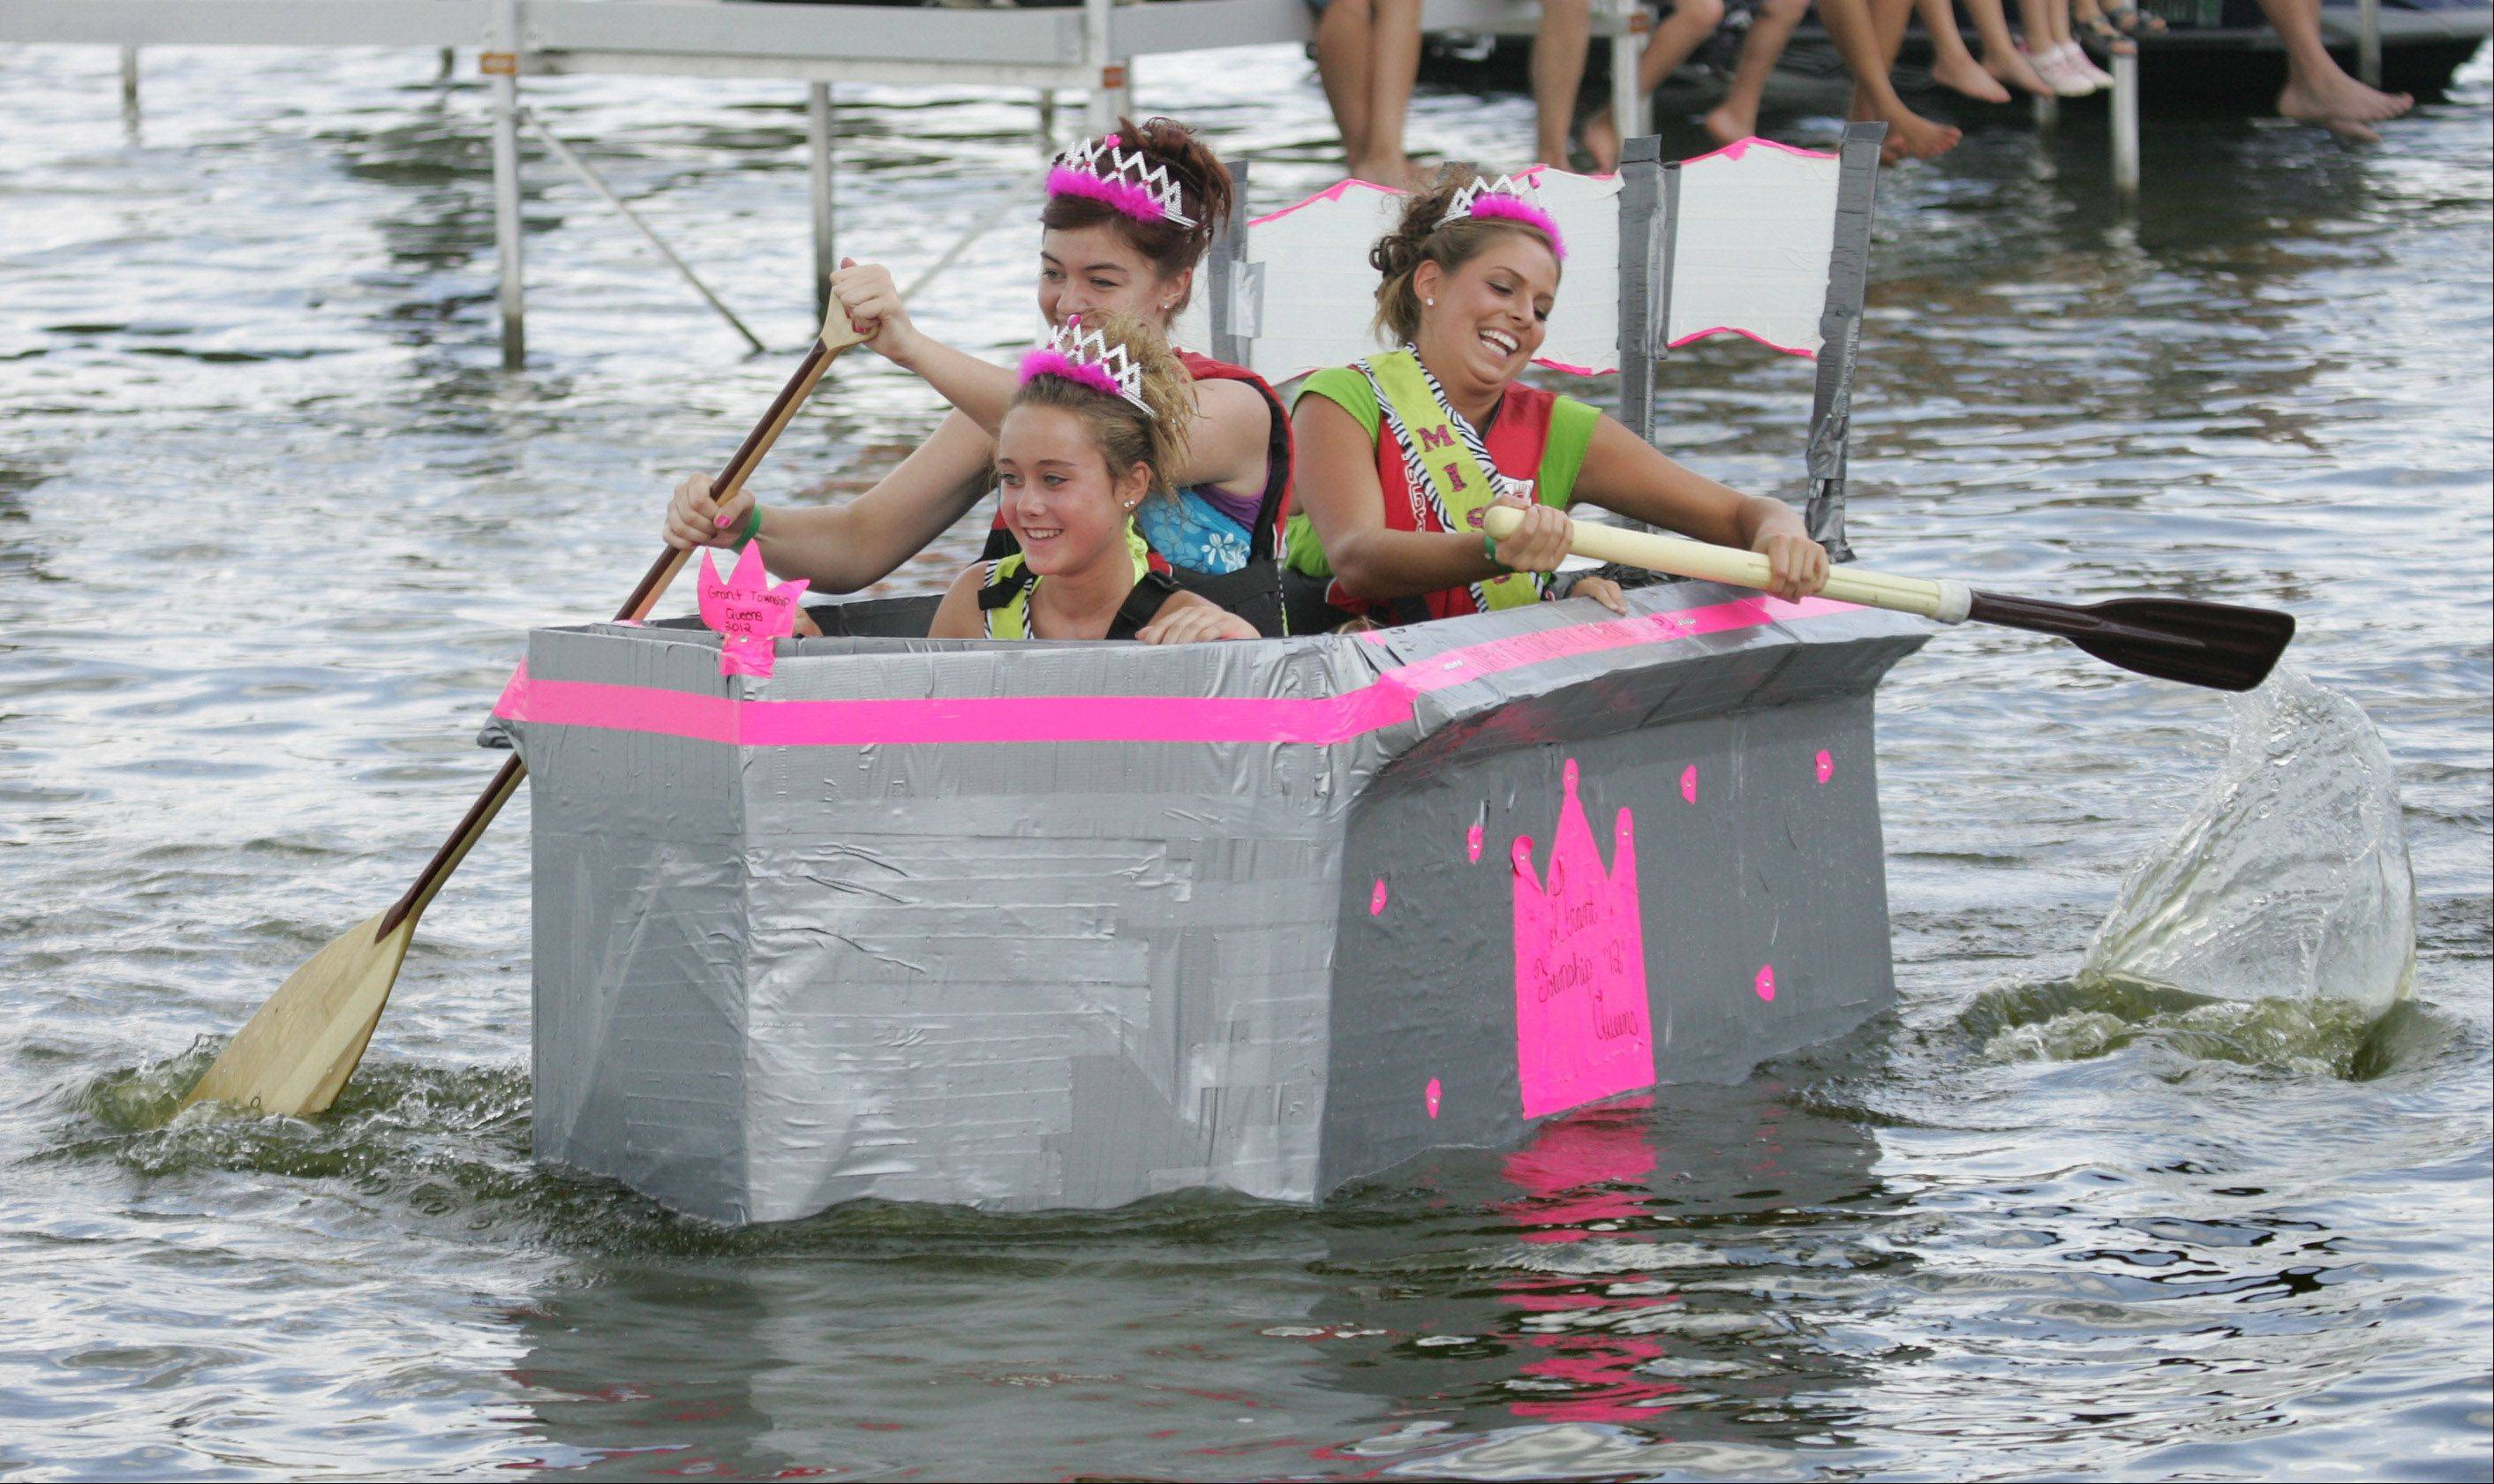 Grant Township Junior Miss Gabriela Schoenberg, front, Grant Township Teen Miss Jessie Burdett, and Miss Grant Township Bethani Jacobsen paddle their boat along the racecourse during the annual Cardboard Cup Regatta Sunday at Lakefront Park. The annual race was sponsored by the Village of Fox Lake Parks and Recreation Department.